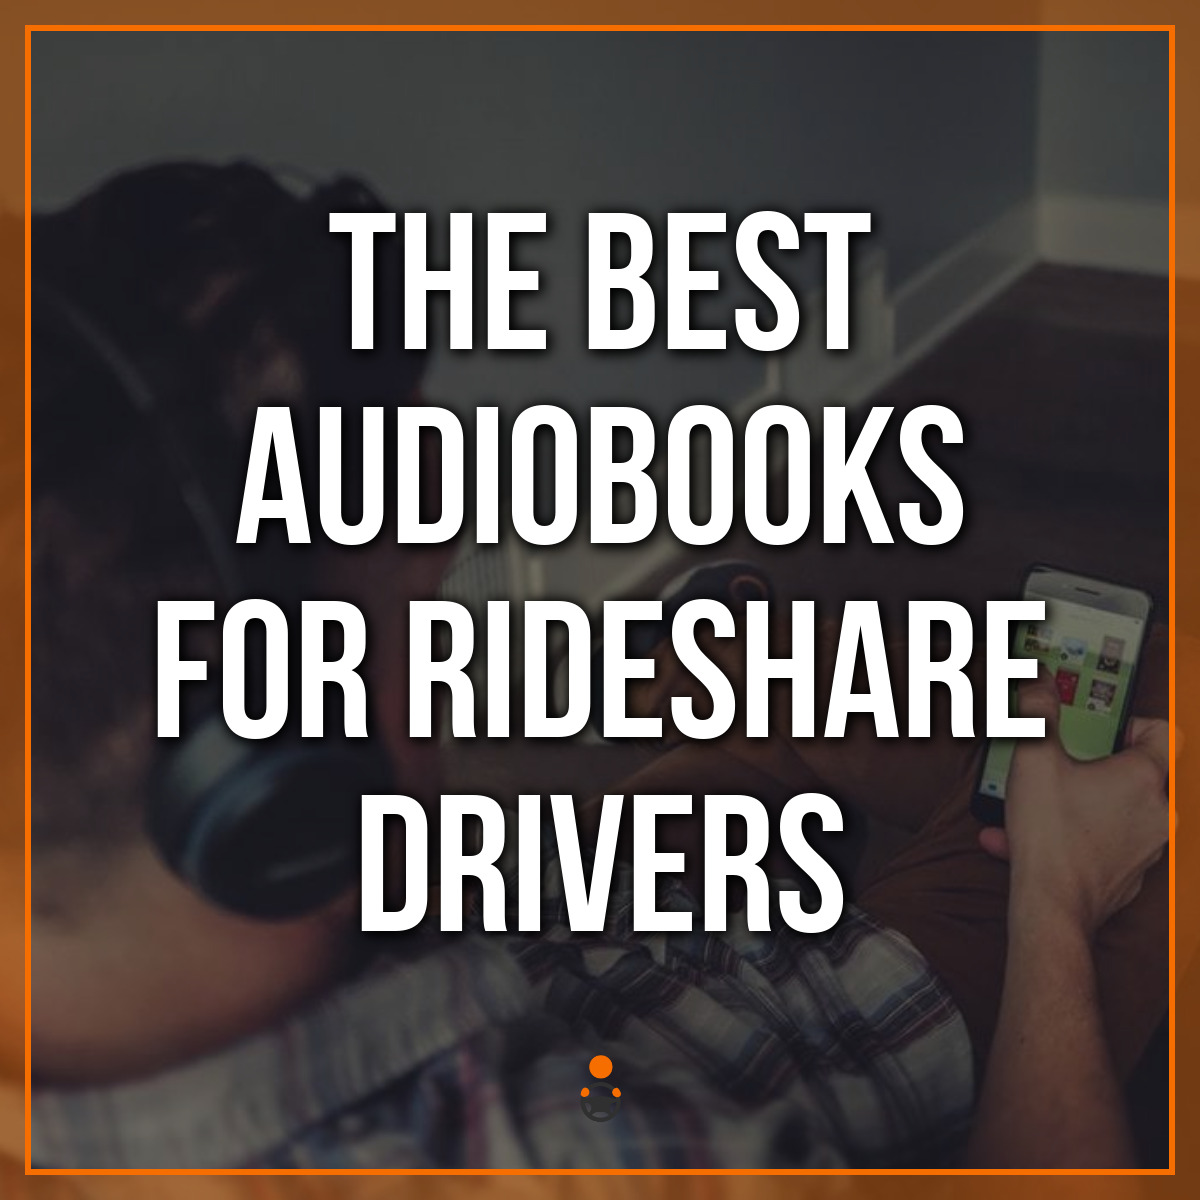 The Best Audiobooks for Rideshare Drivers